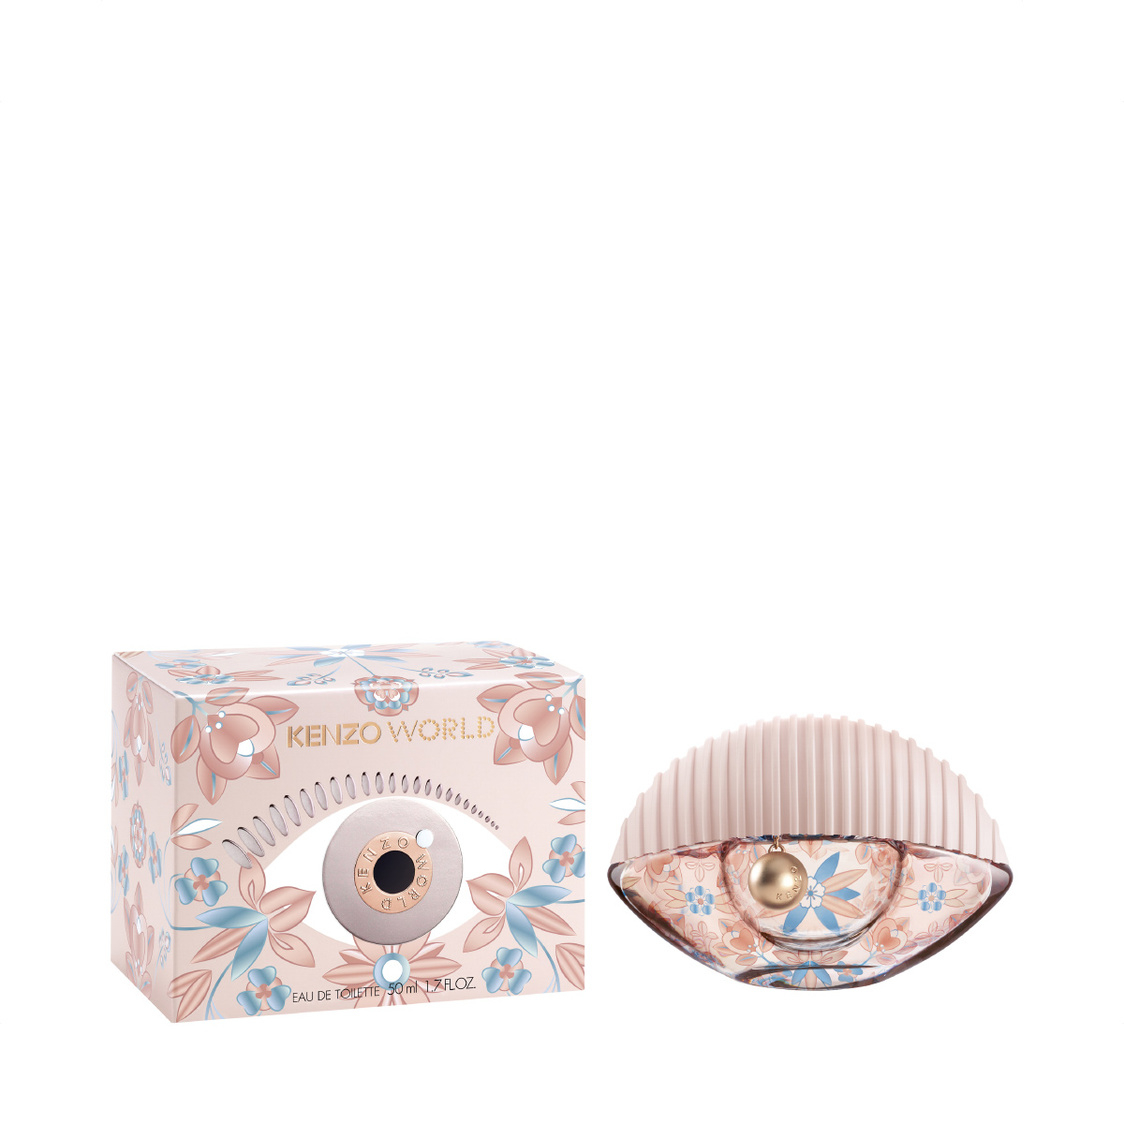 Kenzo World Eau De Toilette Collector 50ml